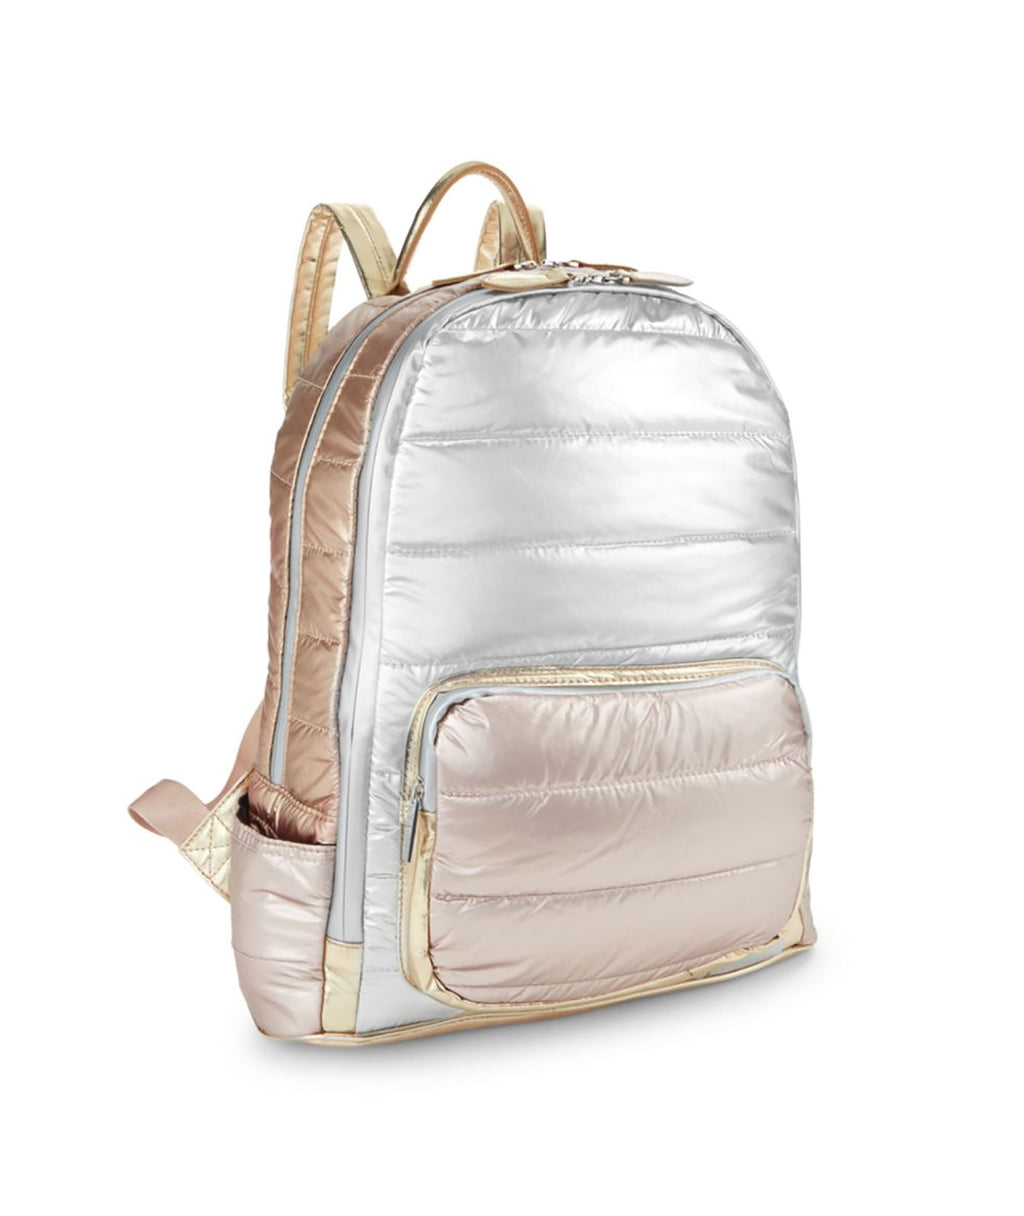 Bari Lynn Metallic Tricolor Backpack